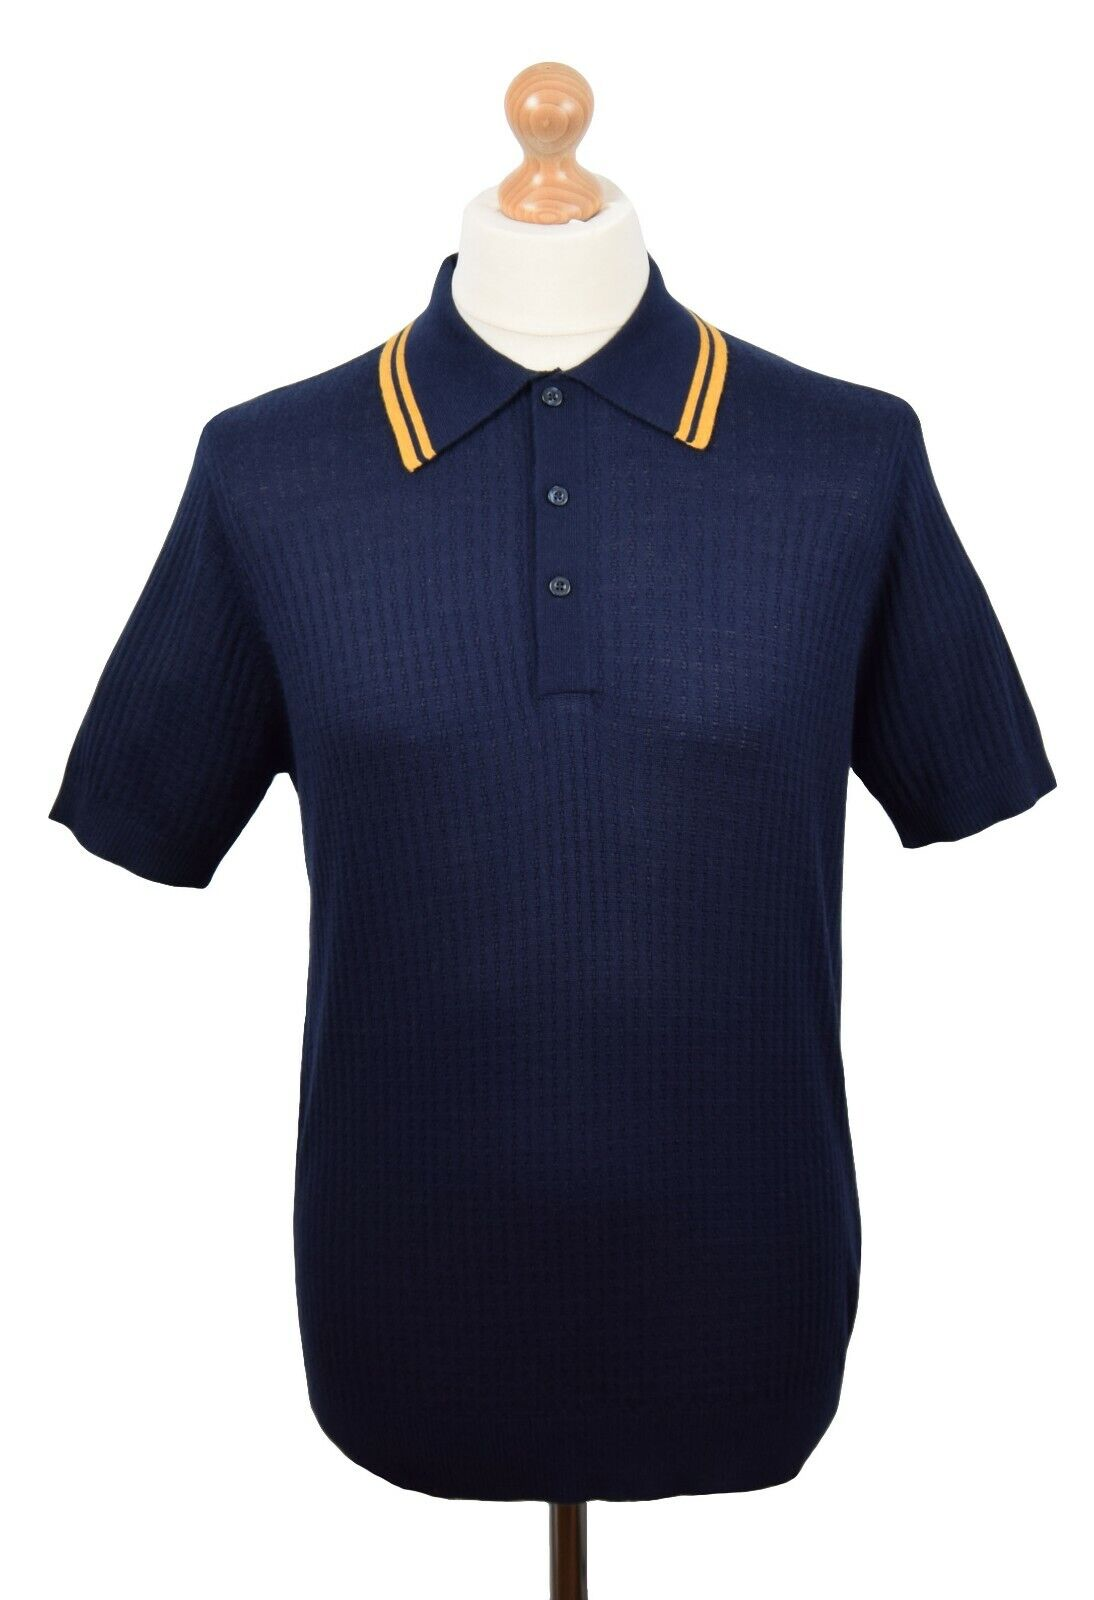 ART GALLERY CLOTHING NAVY TEXTUrot POLO MOD NORTHERN SOUL MODS